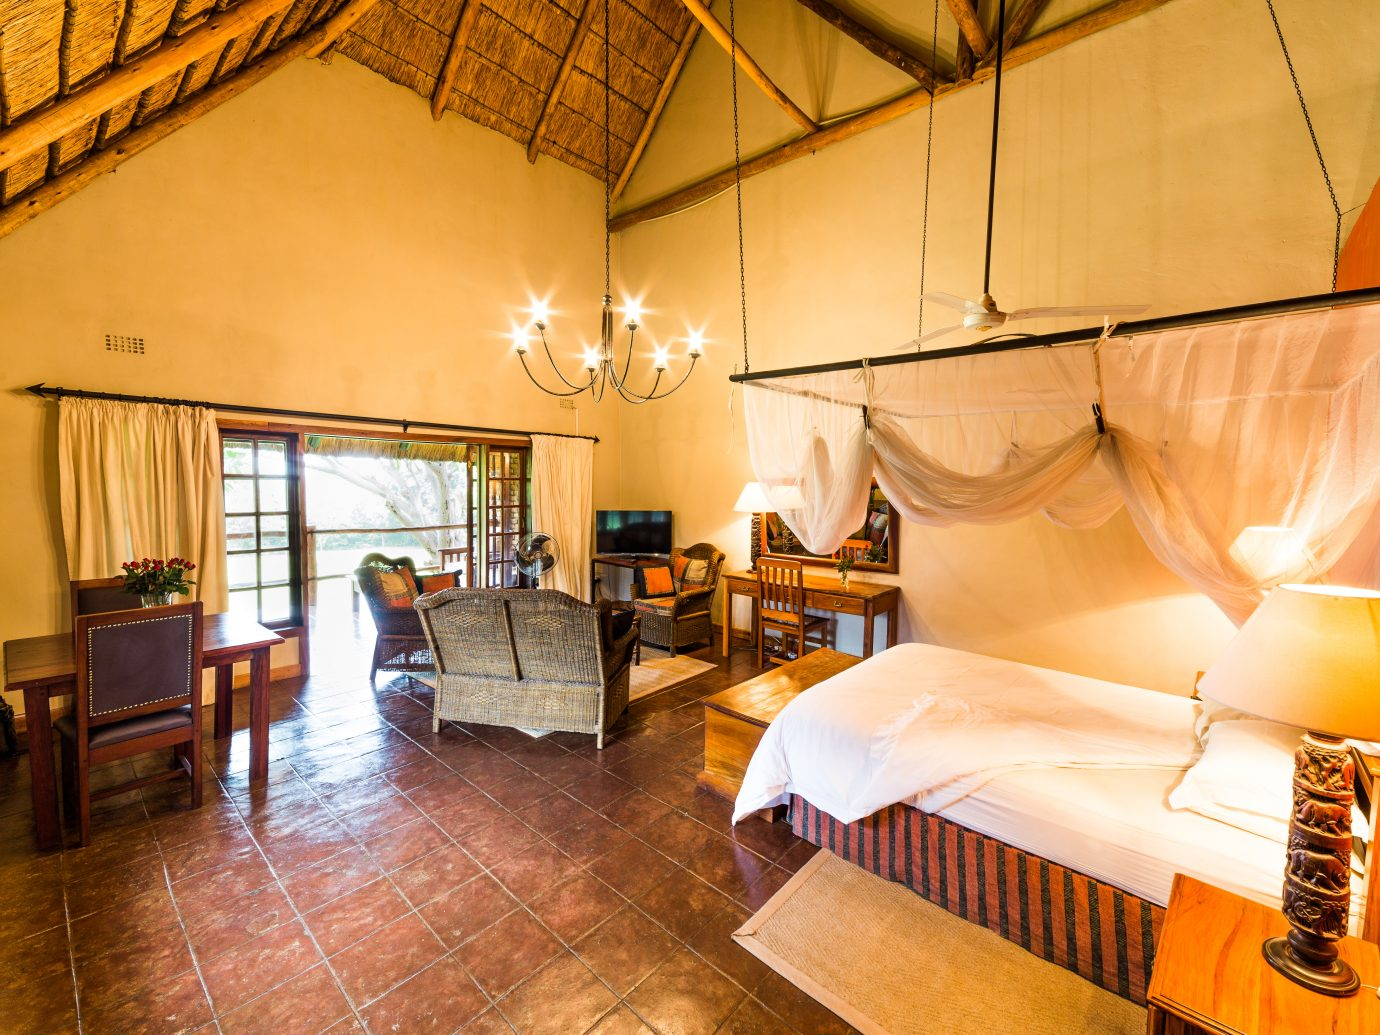 Room at Kumbali Lodge